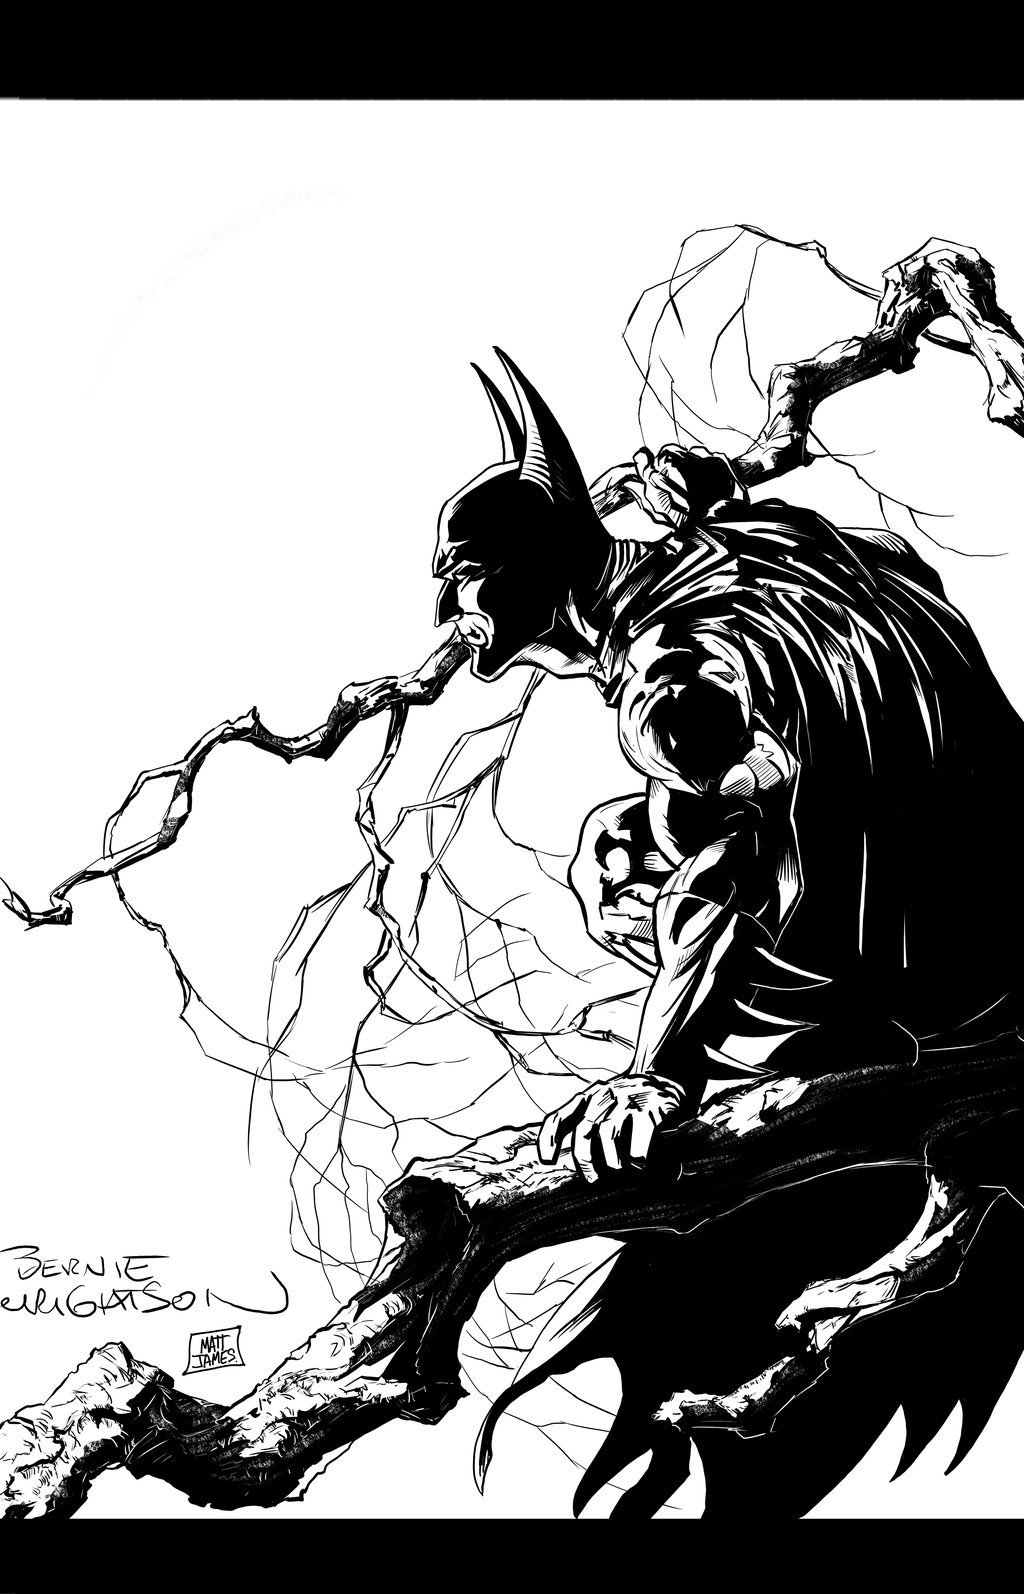 Matt james bernie wrightson batman by mattjamescomicarts d8e6h48